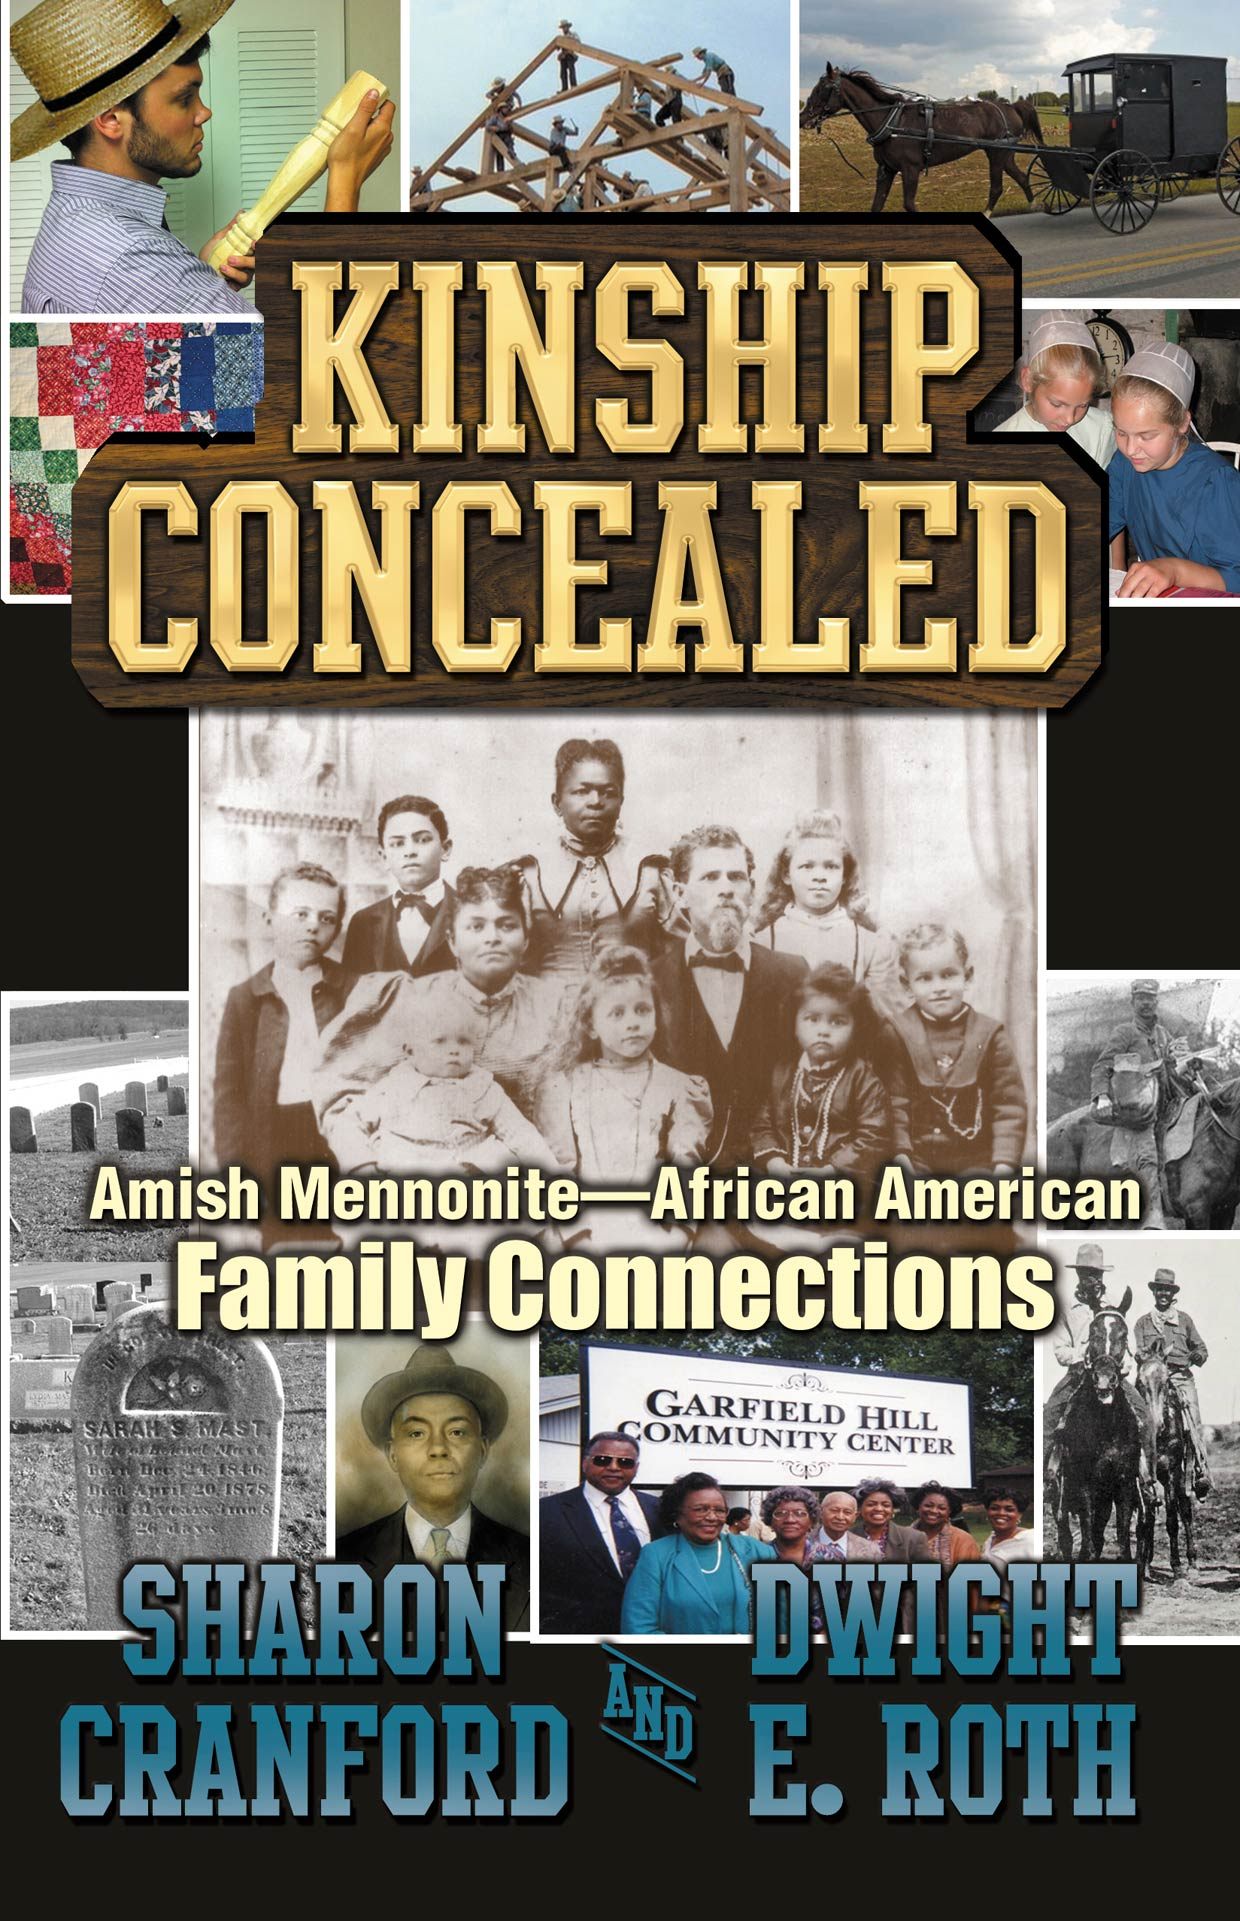 Kinship Concealed: Amish Mennonite - African American Connections